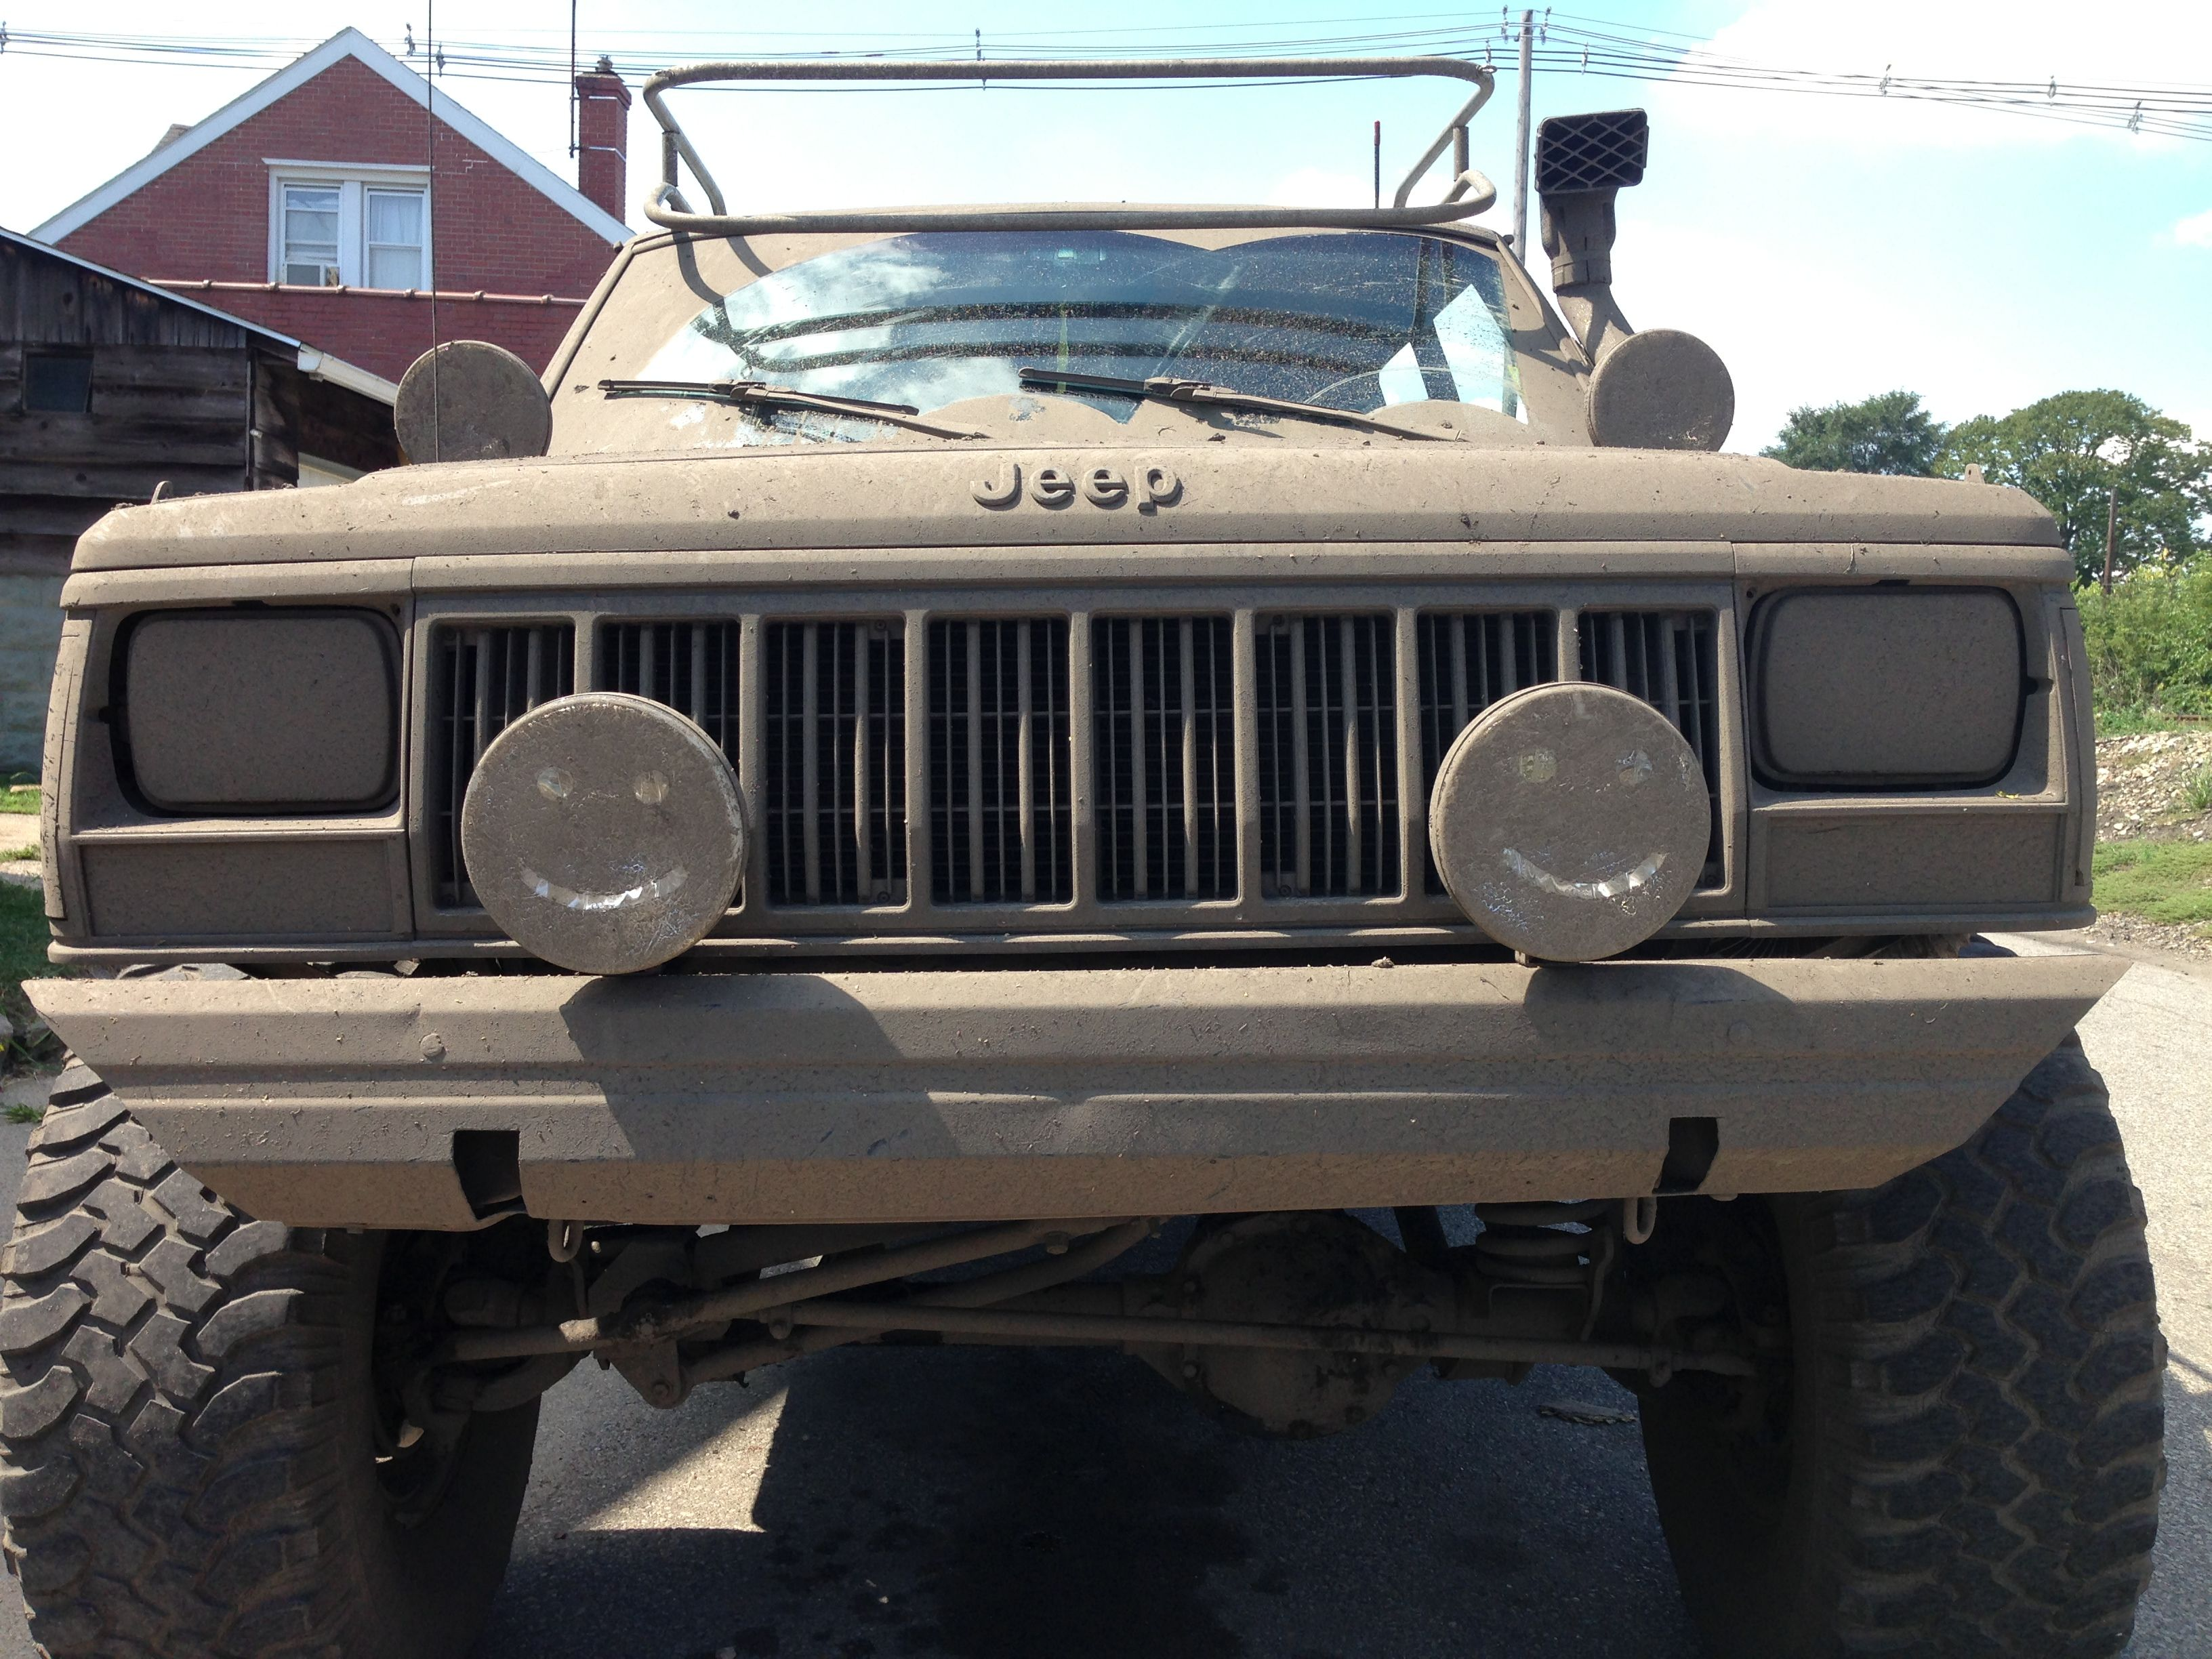 Jeep toys for kids  Fun day out  My toys  Pinterest  Best Toy ideas